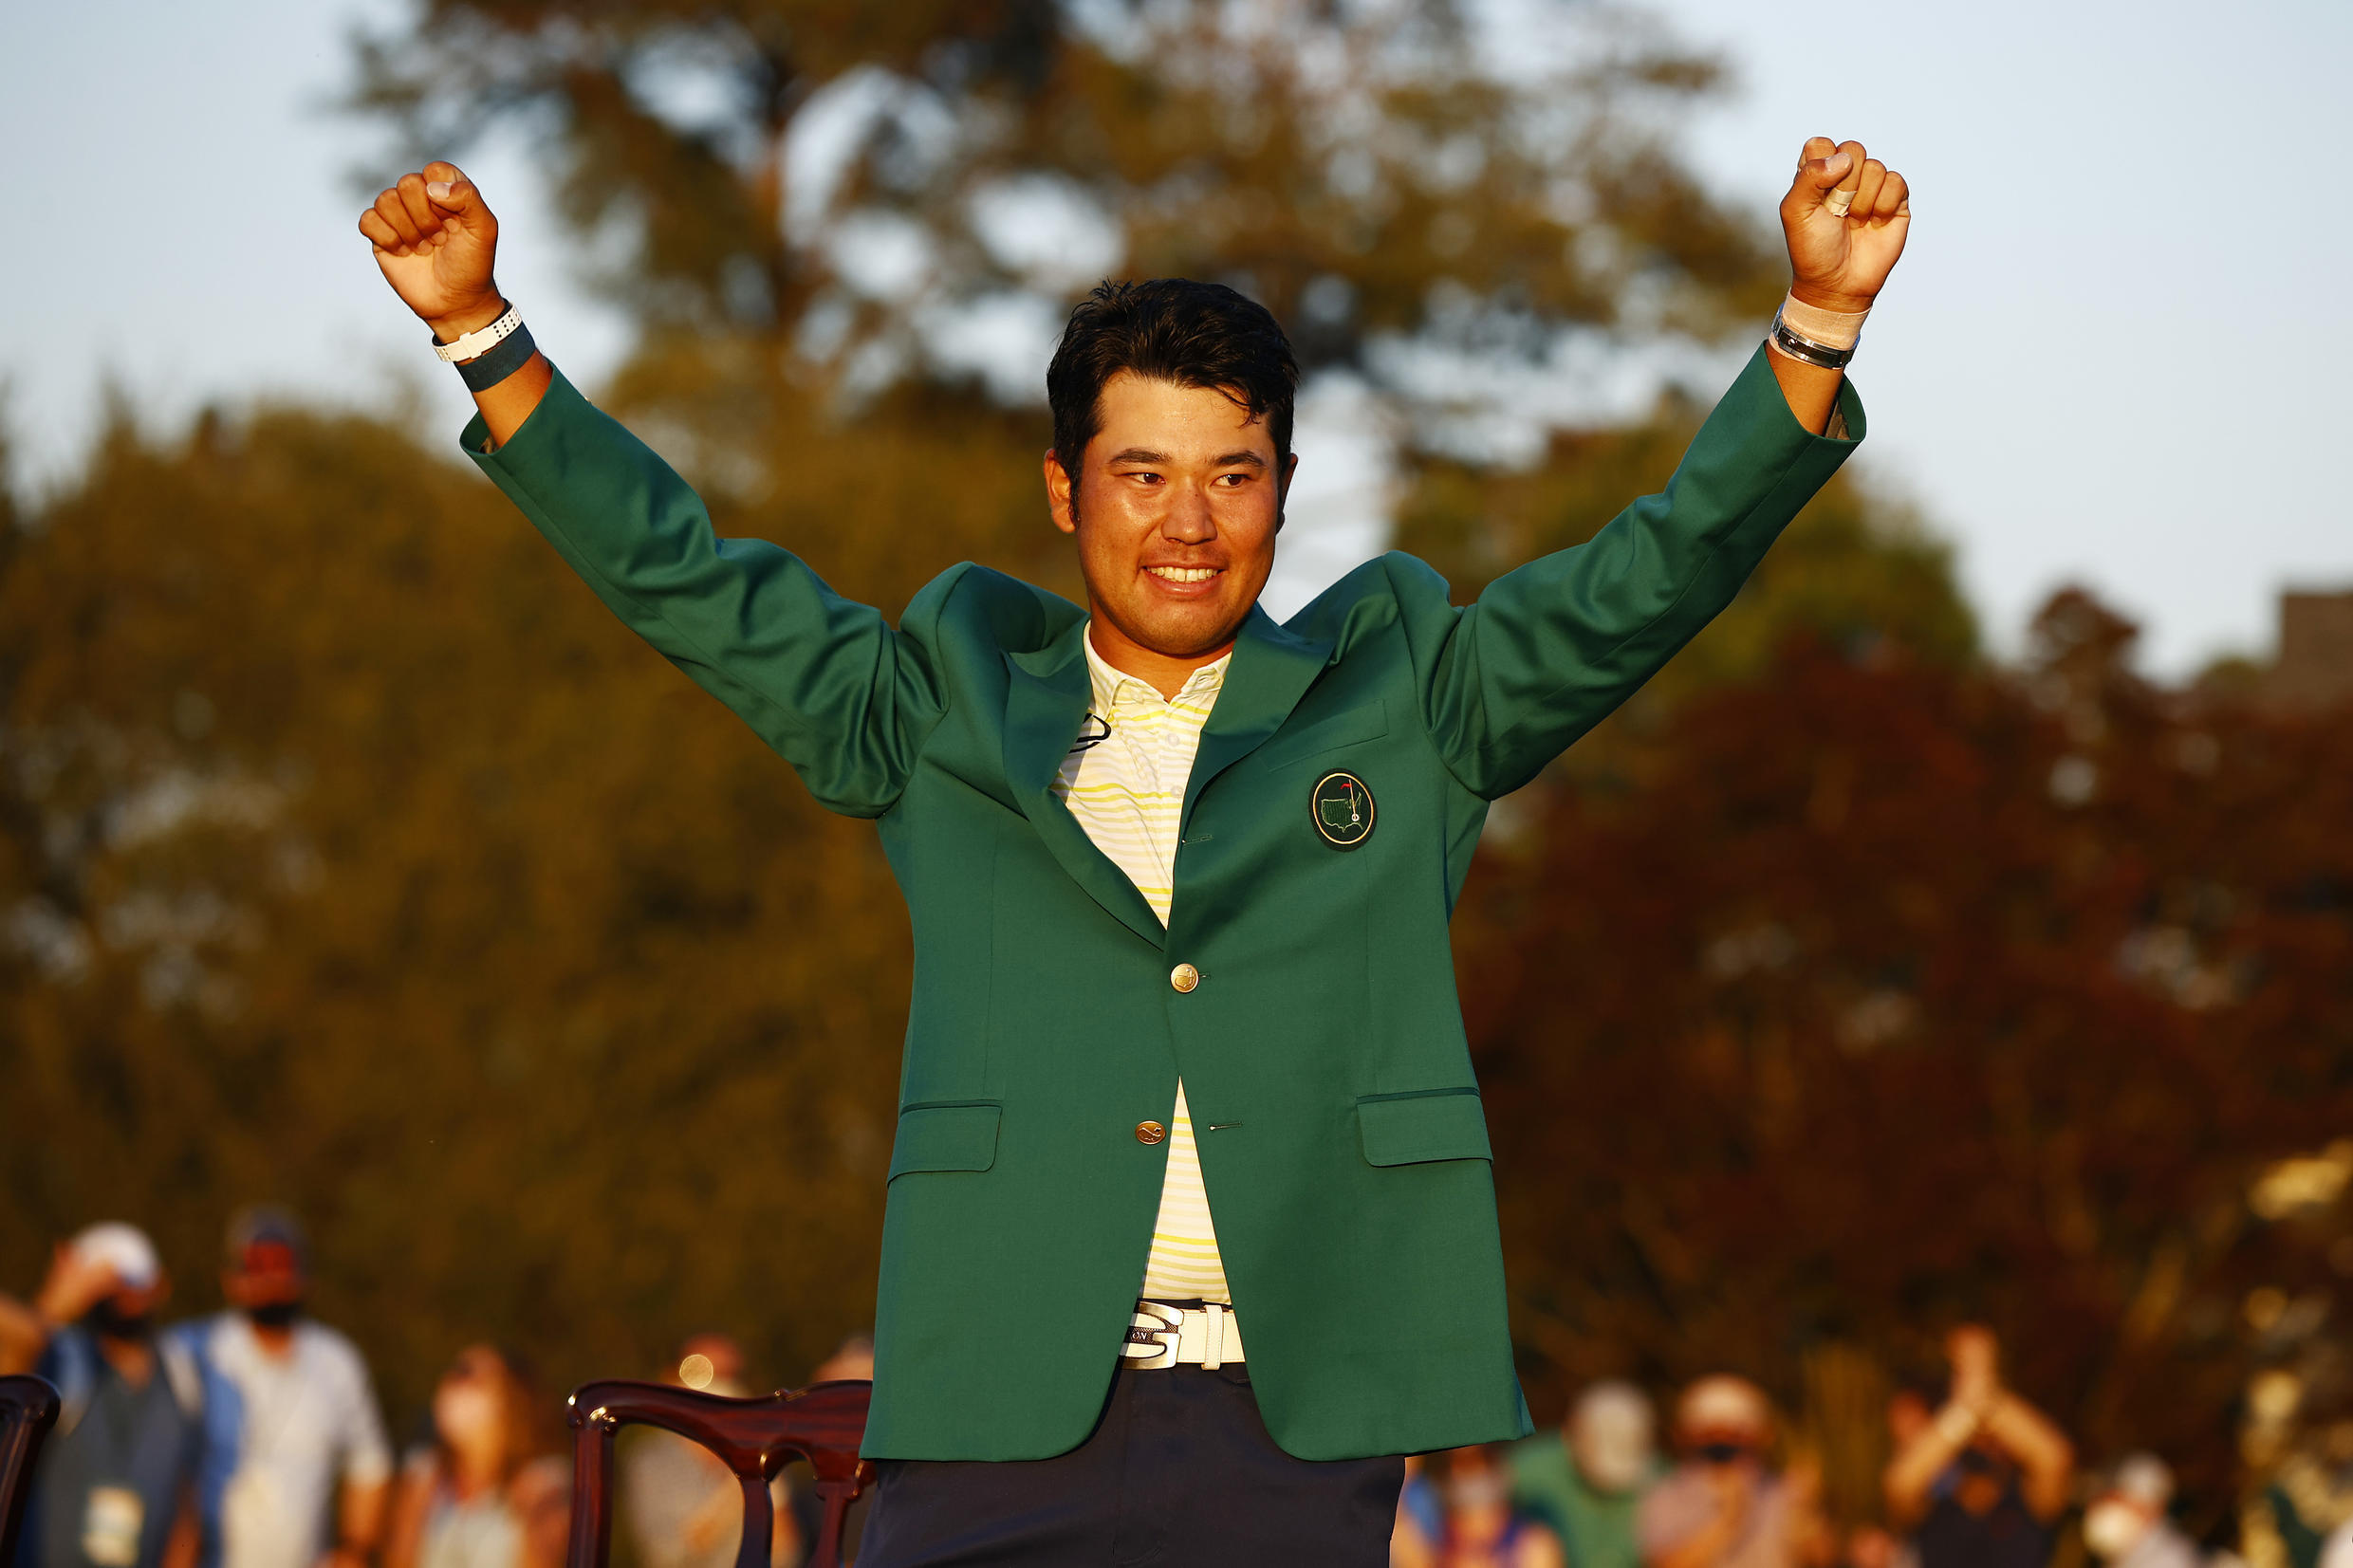 Japan's Hideki Matsuyama celebrates after receiving the green jacket symbolic of a Masters champion for his victory Sunday at Augusta National